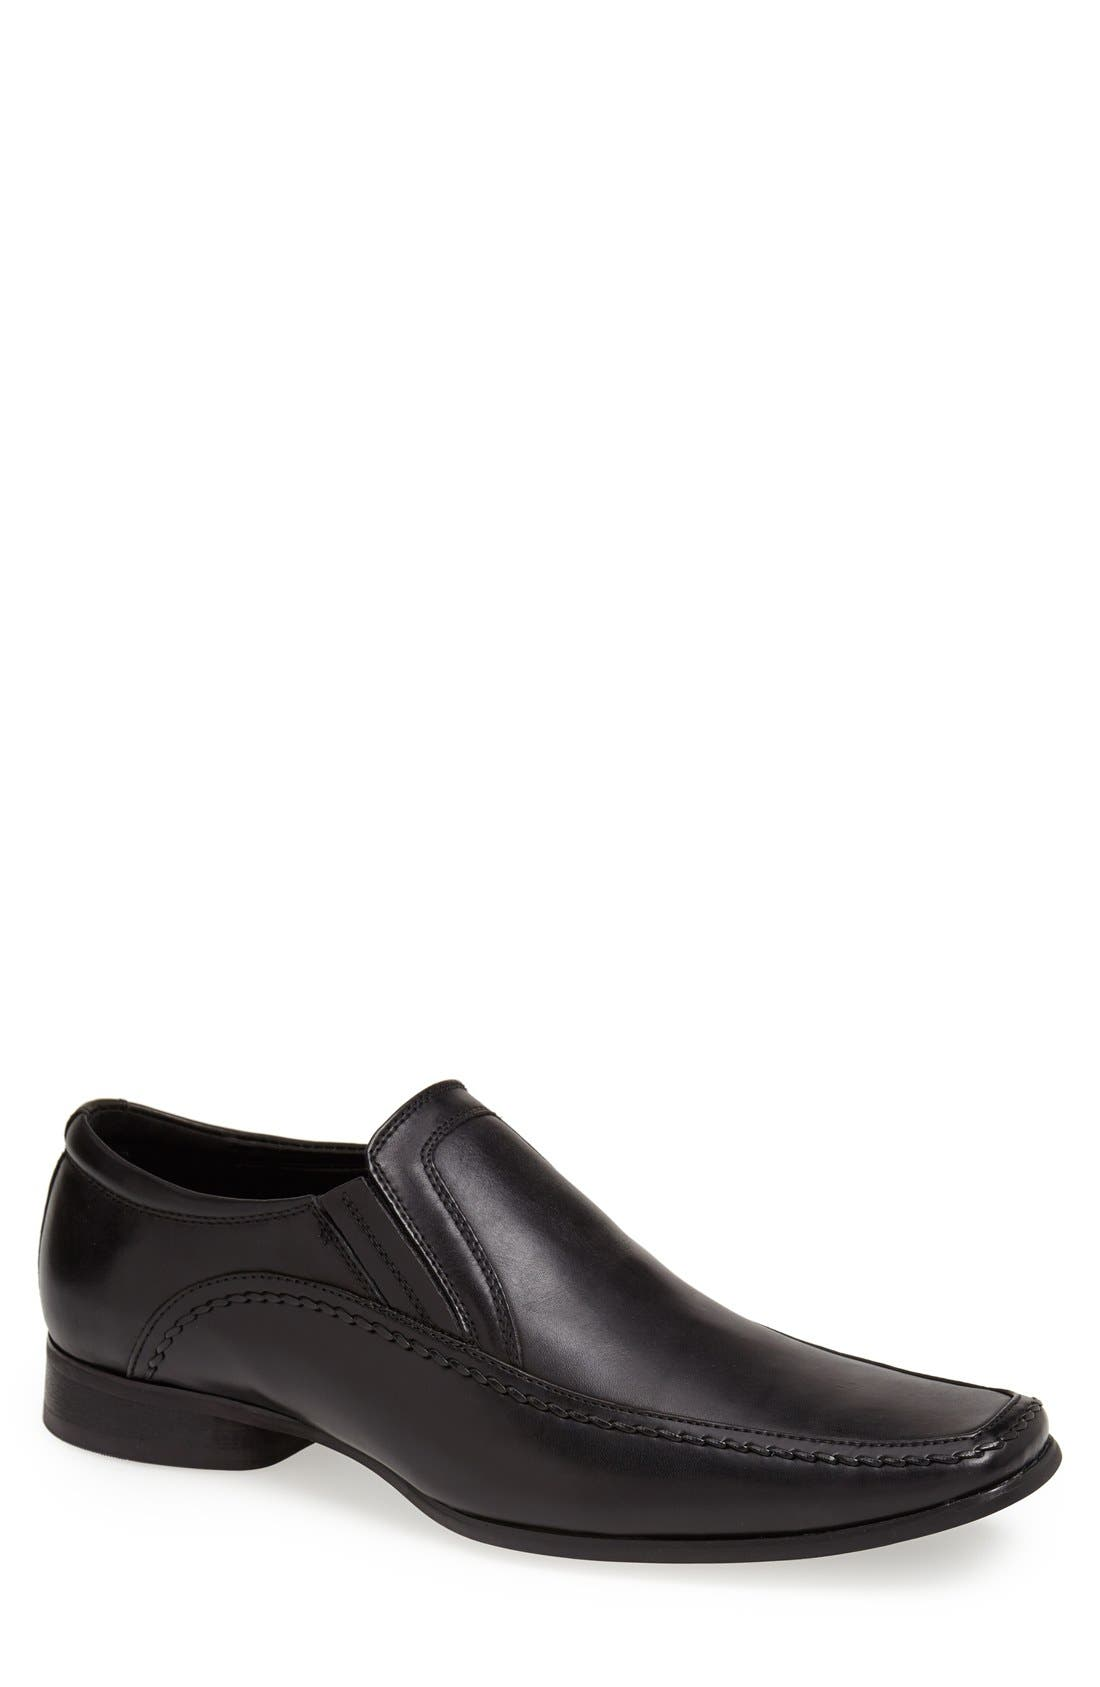 REACTION KENNETH COLE,                             'Key Note' Slip-On,                             Main thumbnail 1, color,                             001